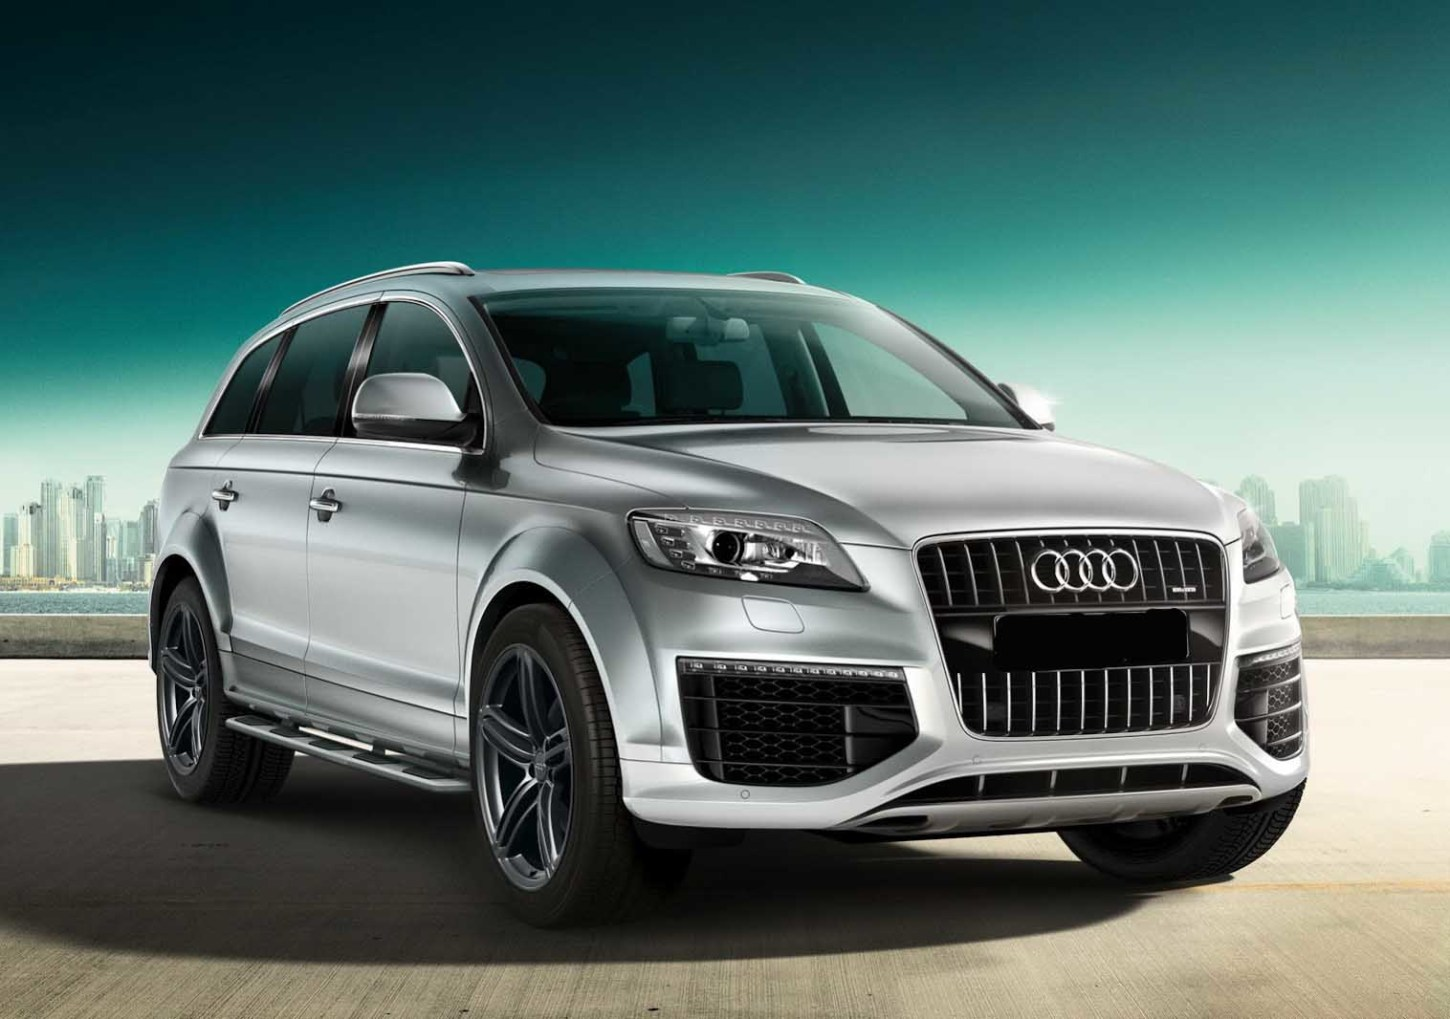 new audi 2016 q7 the second generation of the luxury crossover. Black Bedroom Furniture Sets. Home Design Ideas